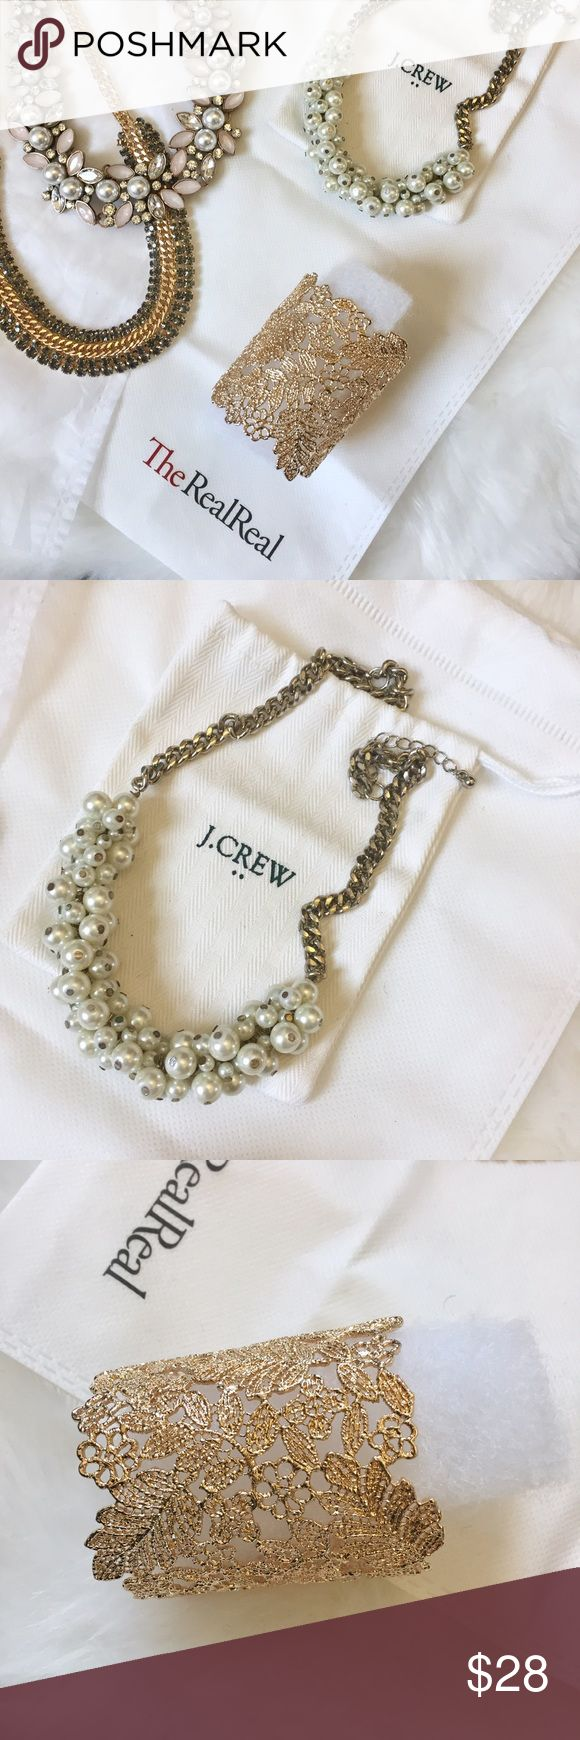 Assorted Jewelry with Dust Bag (bundle of 4 items) Three necklaces and one bracelet/cuff. I believe the pearl one is from J. Crew (2014), the green jeweled one is from Banana Republic (2016), and the adjustable cuff is from Nordstrom (Sole Society filigree bracelet, 2017). Happy to sell separately upon request. Will ship with dust bags and protected bubble wrap! J. Crew Jewelry Necklaces